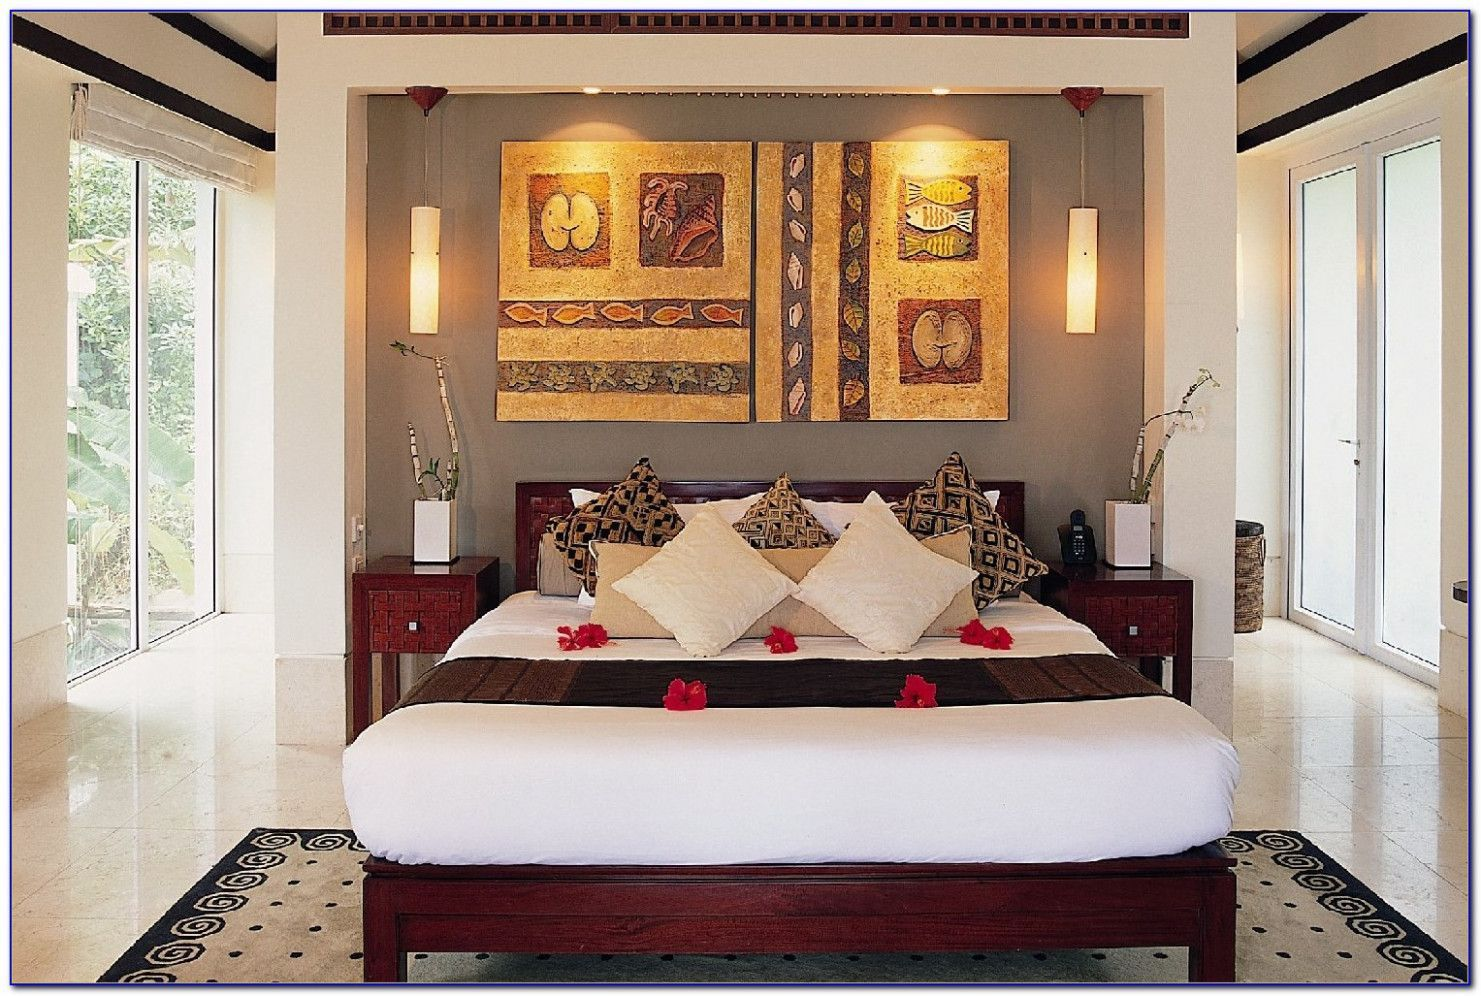 Indian Bedroom Design Bedroom Interior Designs India Design Ideas Indian Style 9 9 Source Indian Style Bedrooms Indian Bedroom Indian Bedroom Design